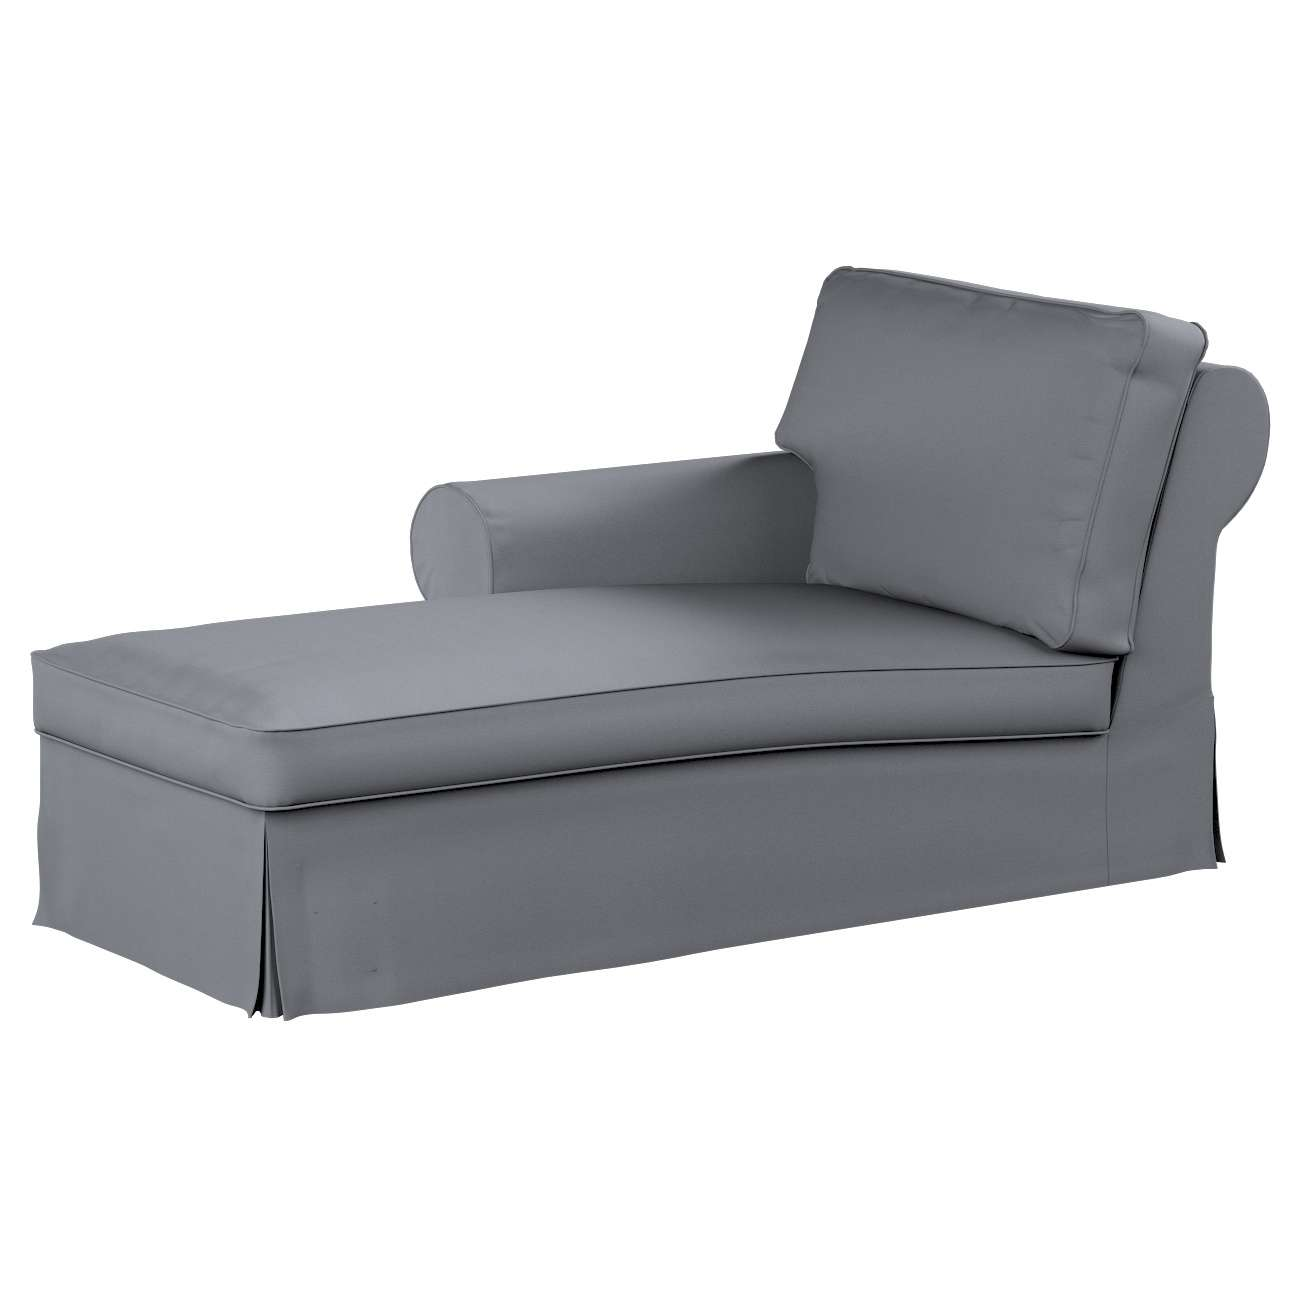 Chaise Longue Acapulco Ektorp Chaise Longue Left Cover